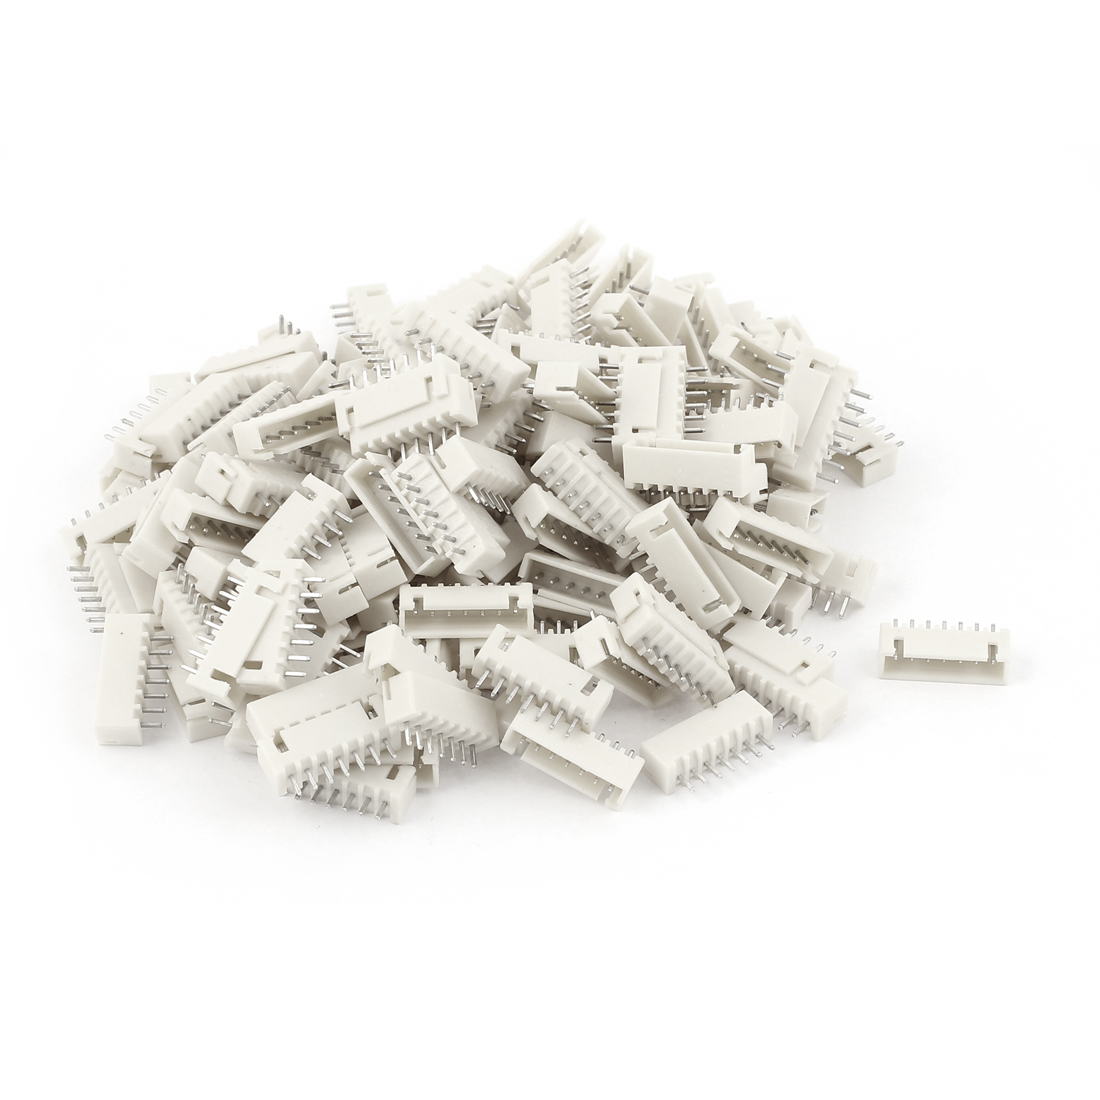 150pcs 2.54mm Pitch Male 7 Pins RC Lipo Battery Balance JST XH Header Connector